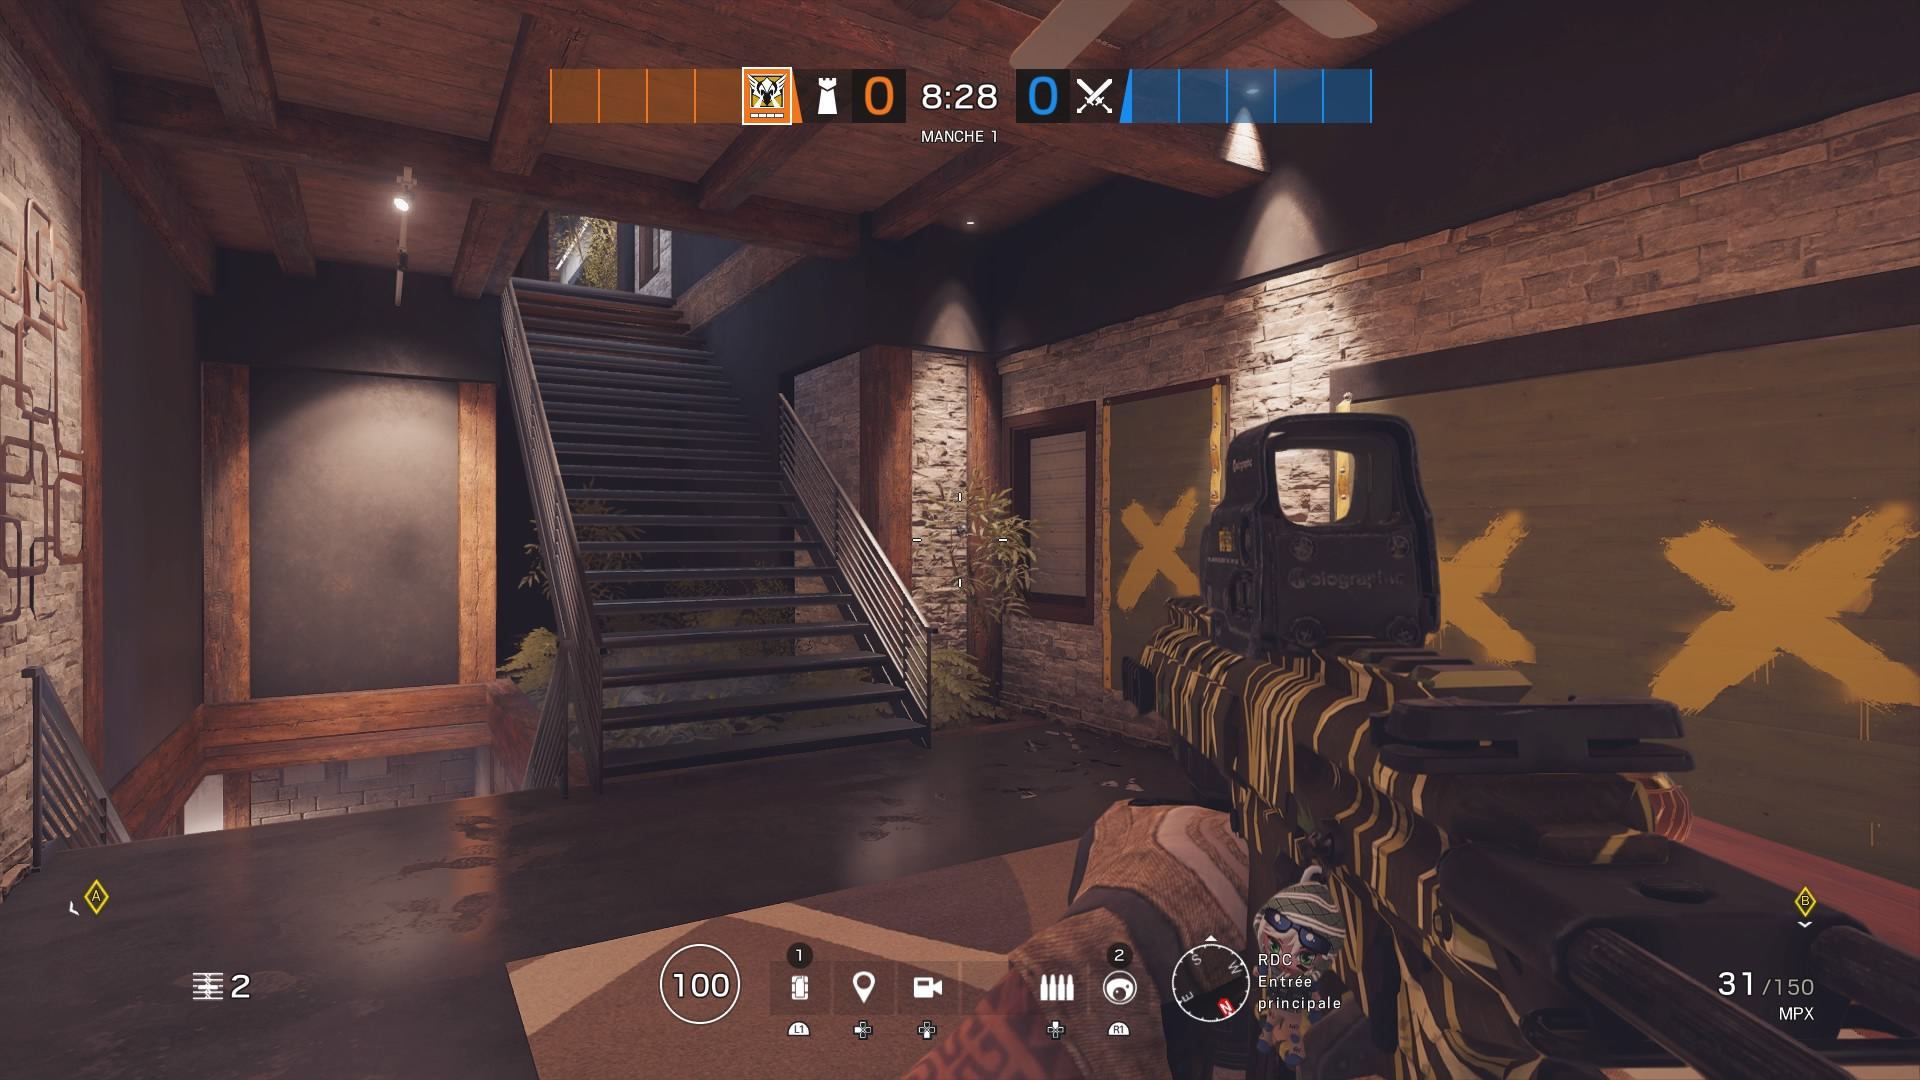 tom_clancy_s_rainbow_six_r_siege_20190724113556.jpg